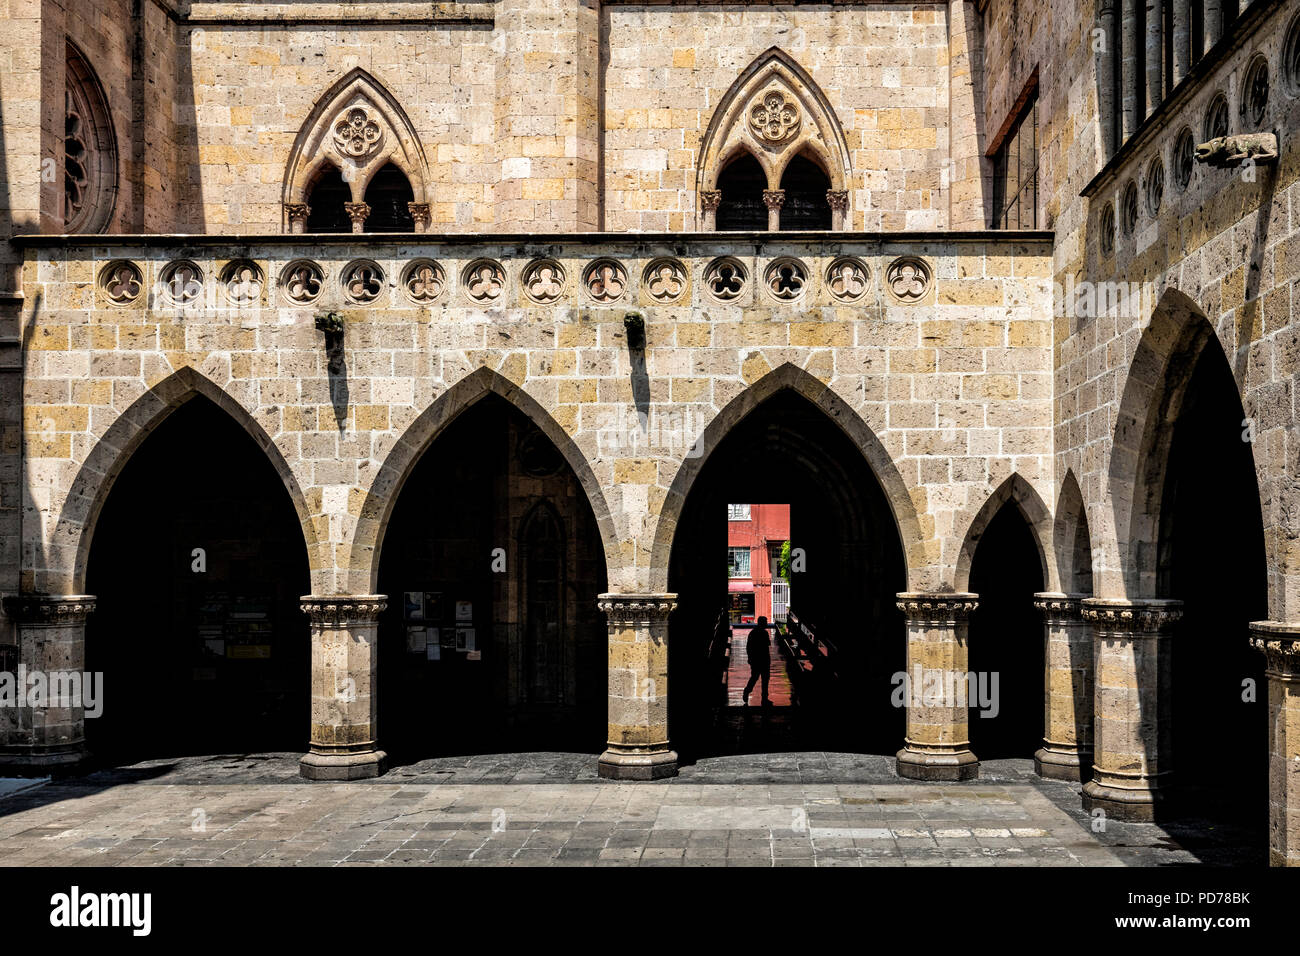 Patio of the Expiatorio Temple in Guadalajara, Jalisco, Mexico. - Stock Image